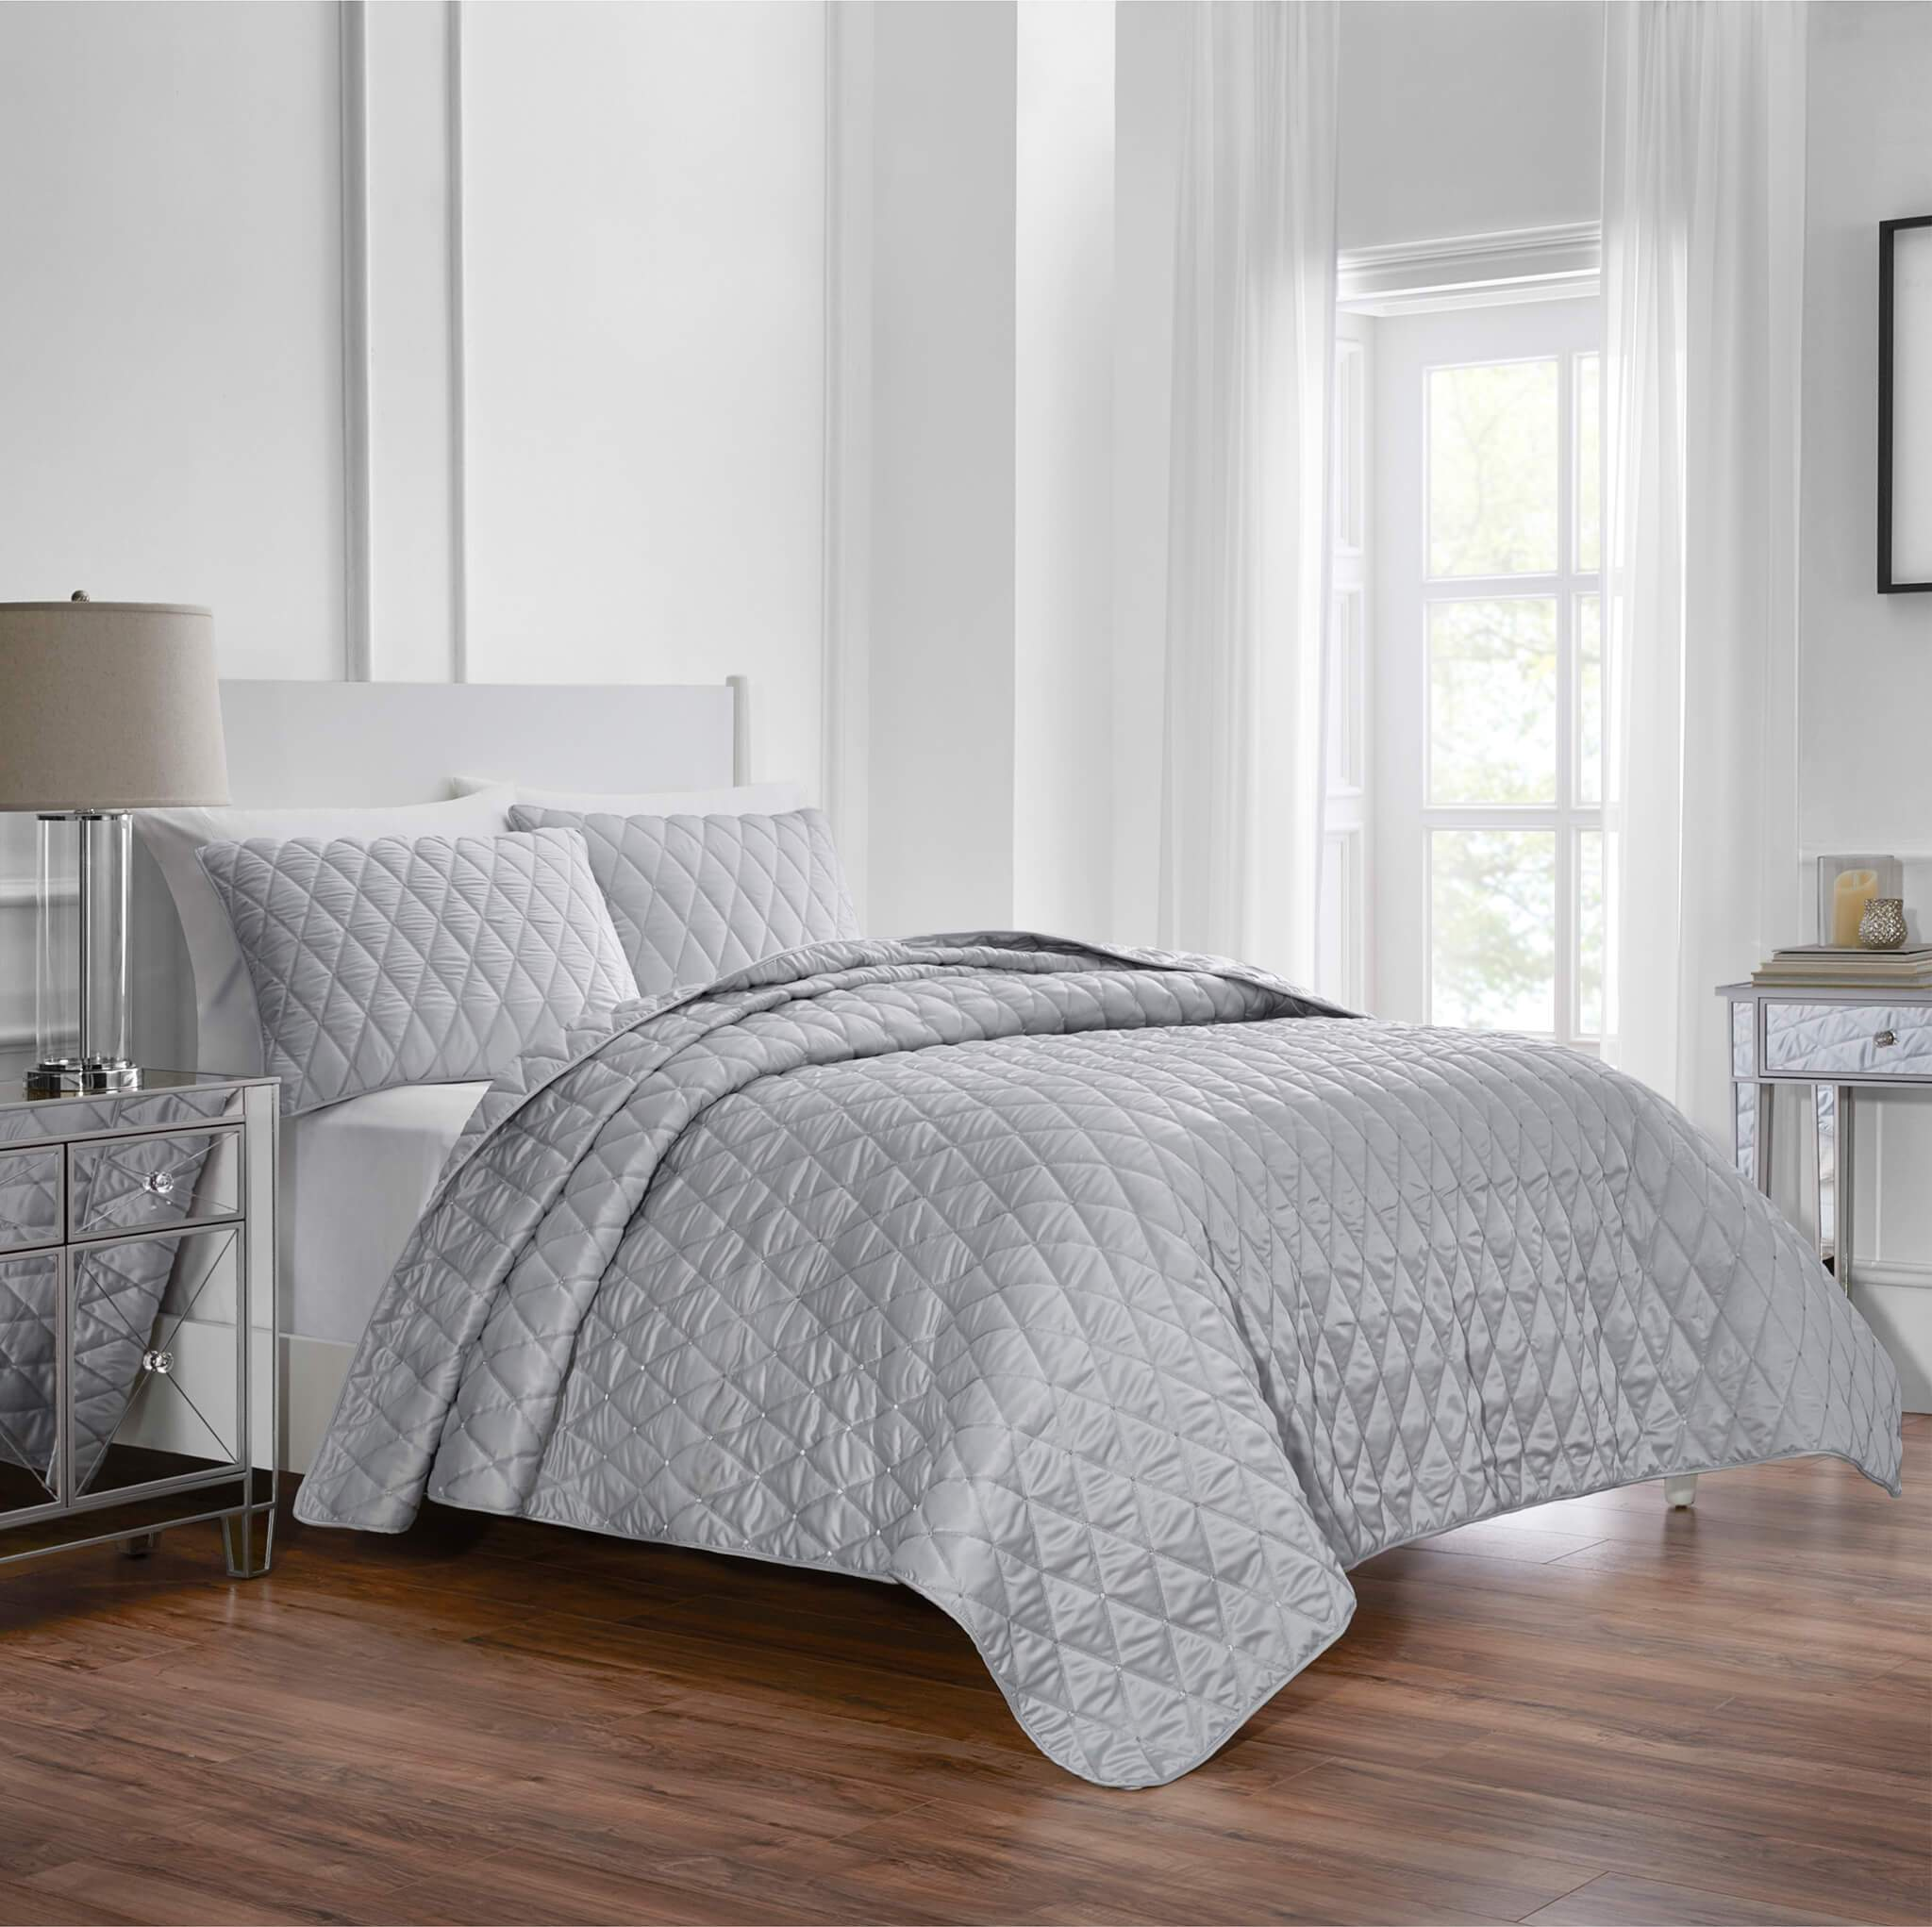 Keyla Grey 3-Piece Quilt Set